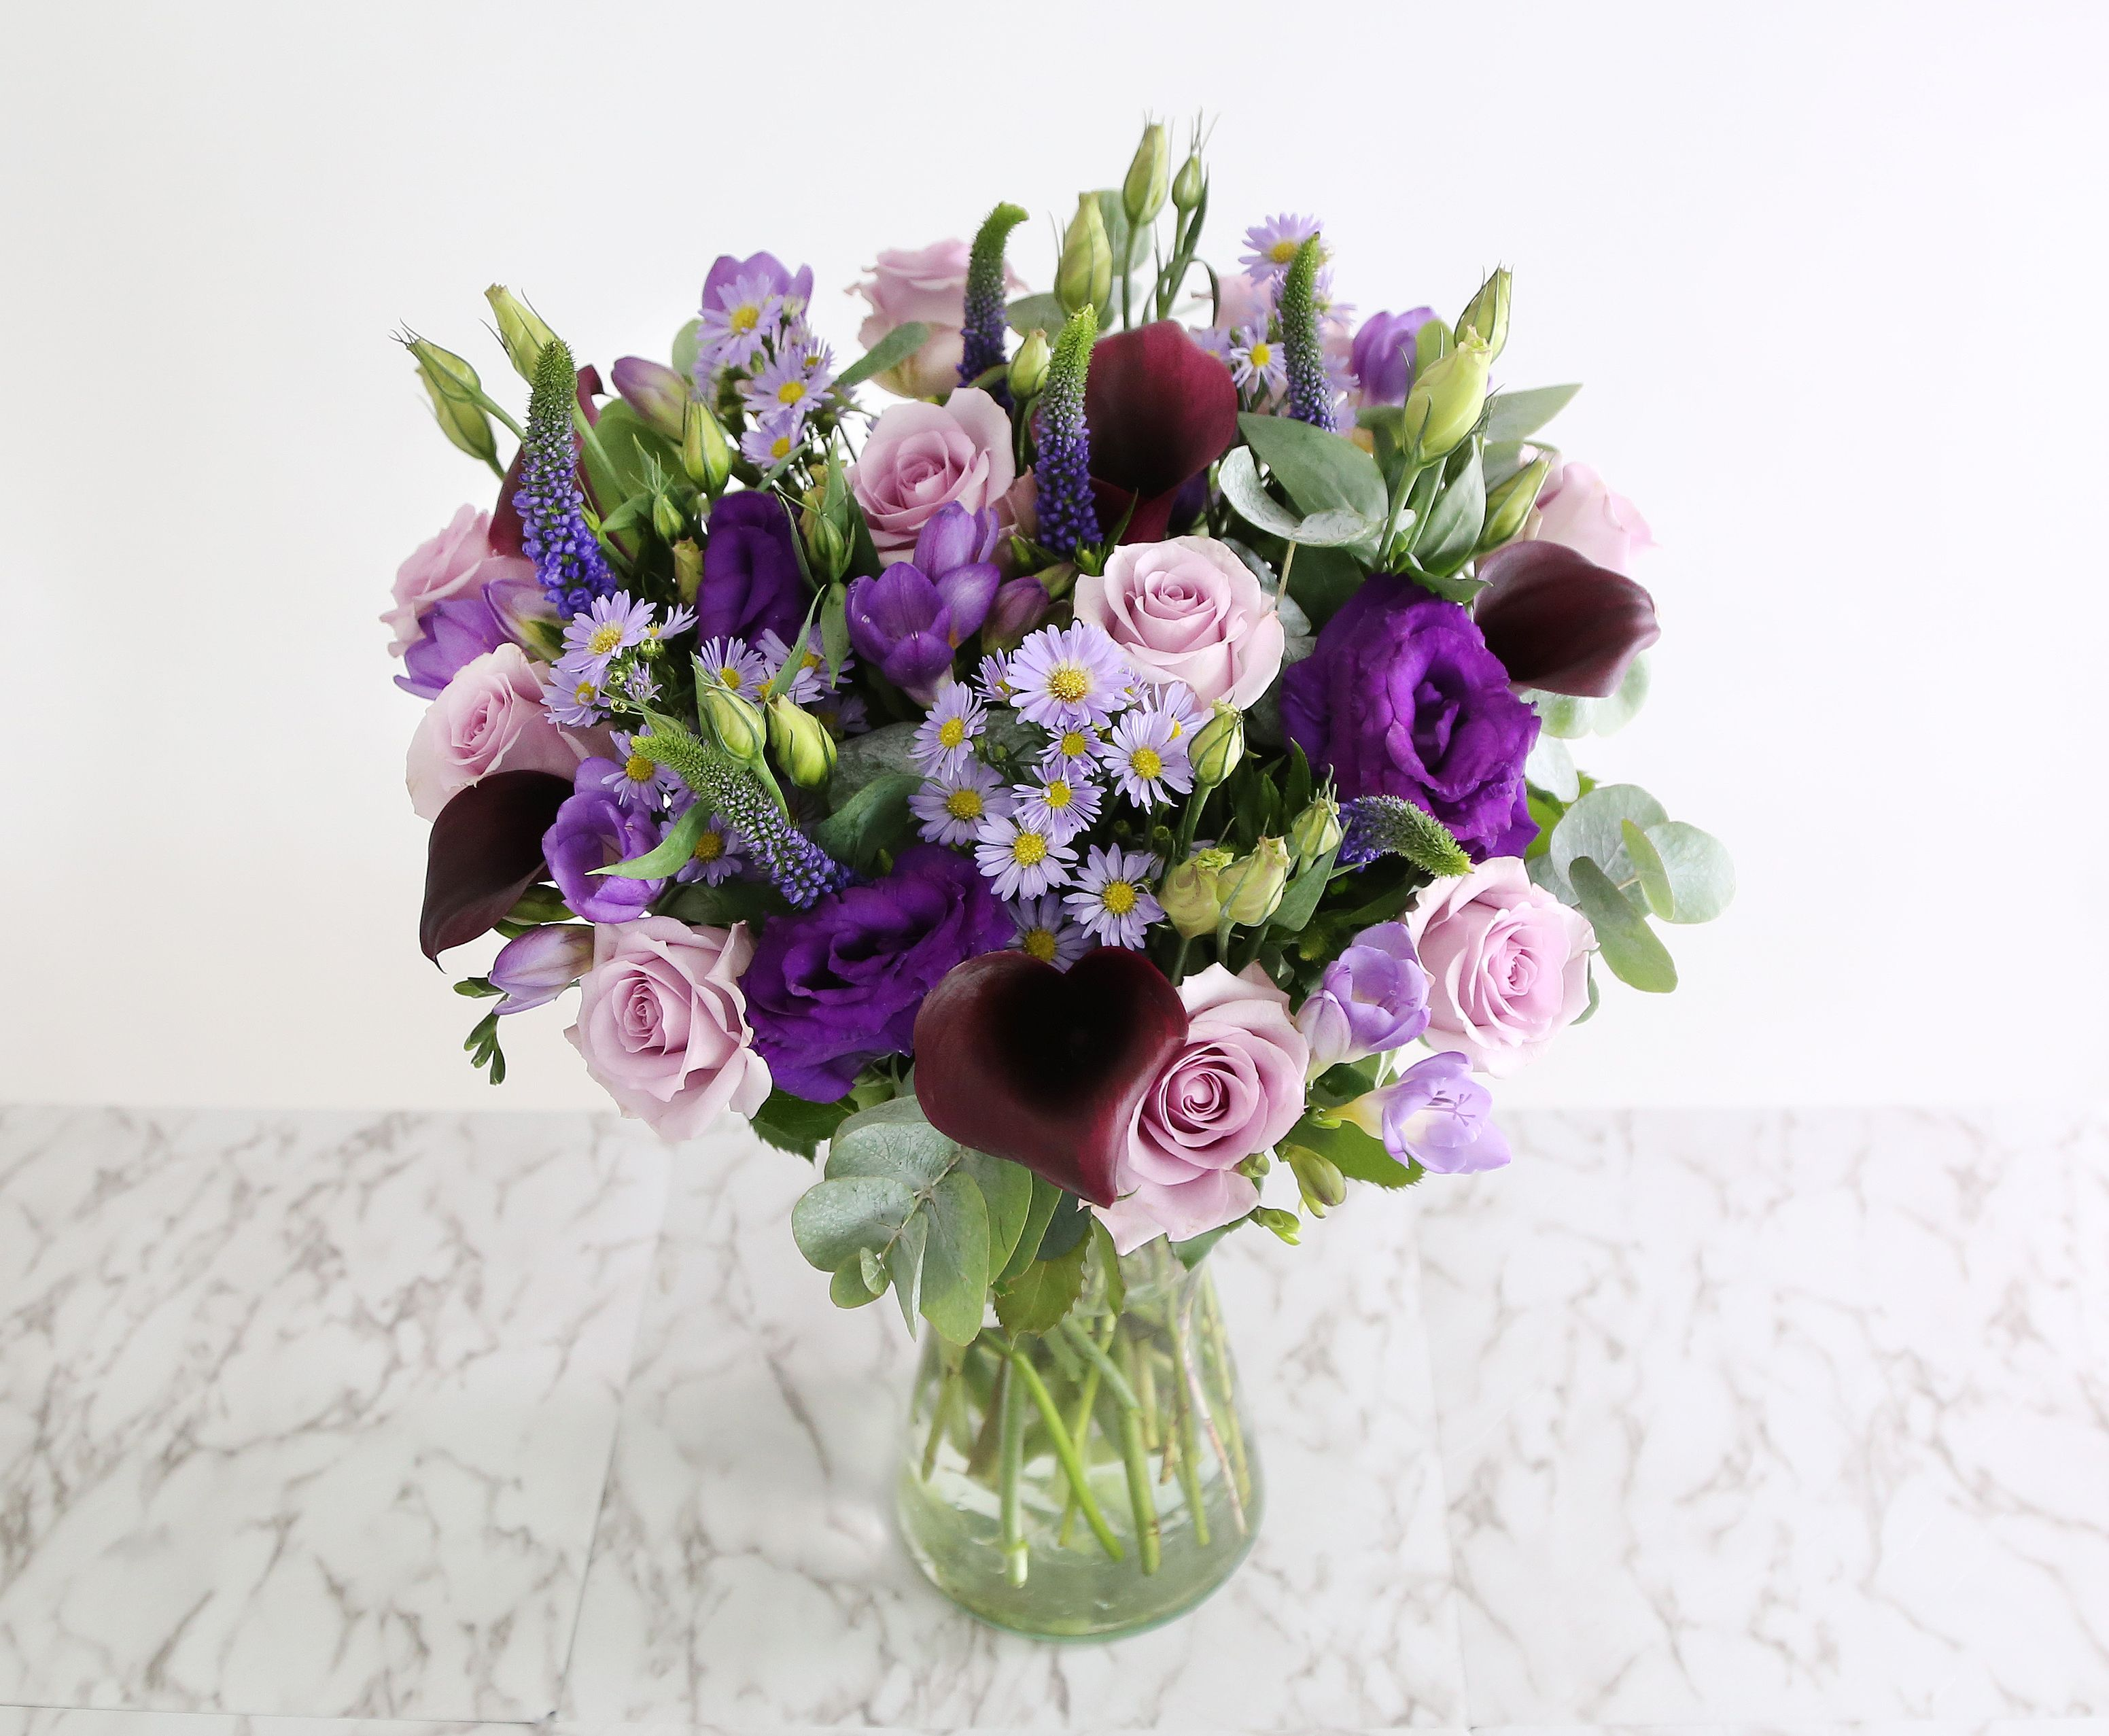 Purple Haze Bouquet • 10 Rose 'ocean song' • 4 Blue